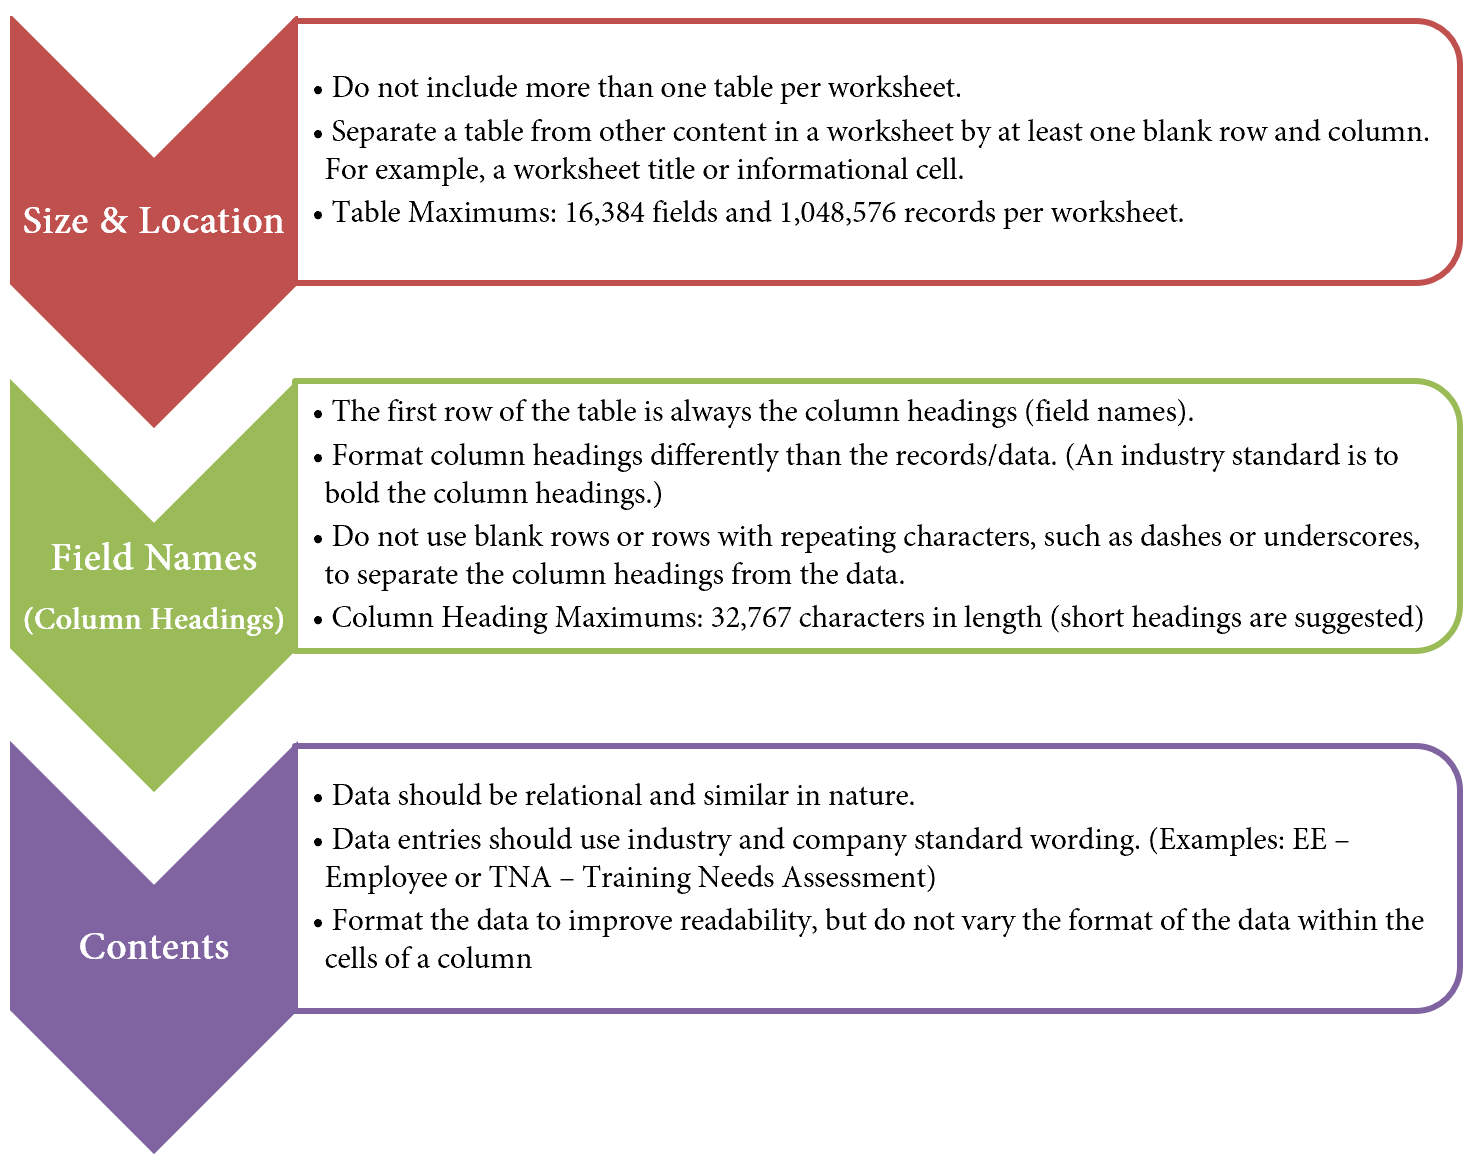 Structuring and planning table layouts is vital for data integrity. Included in the graphic are guidelines to consider when designing and building a table from scratch.